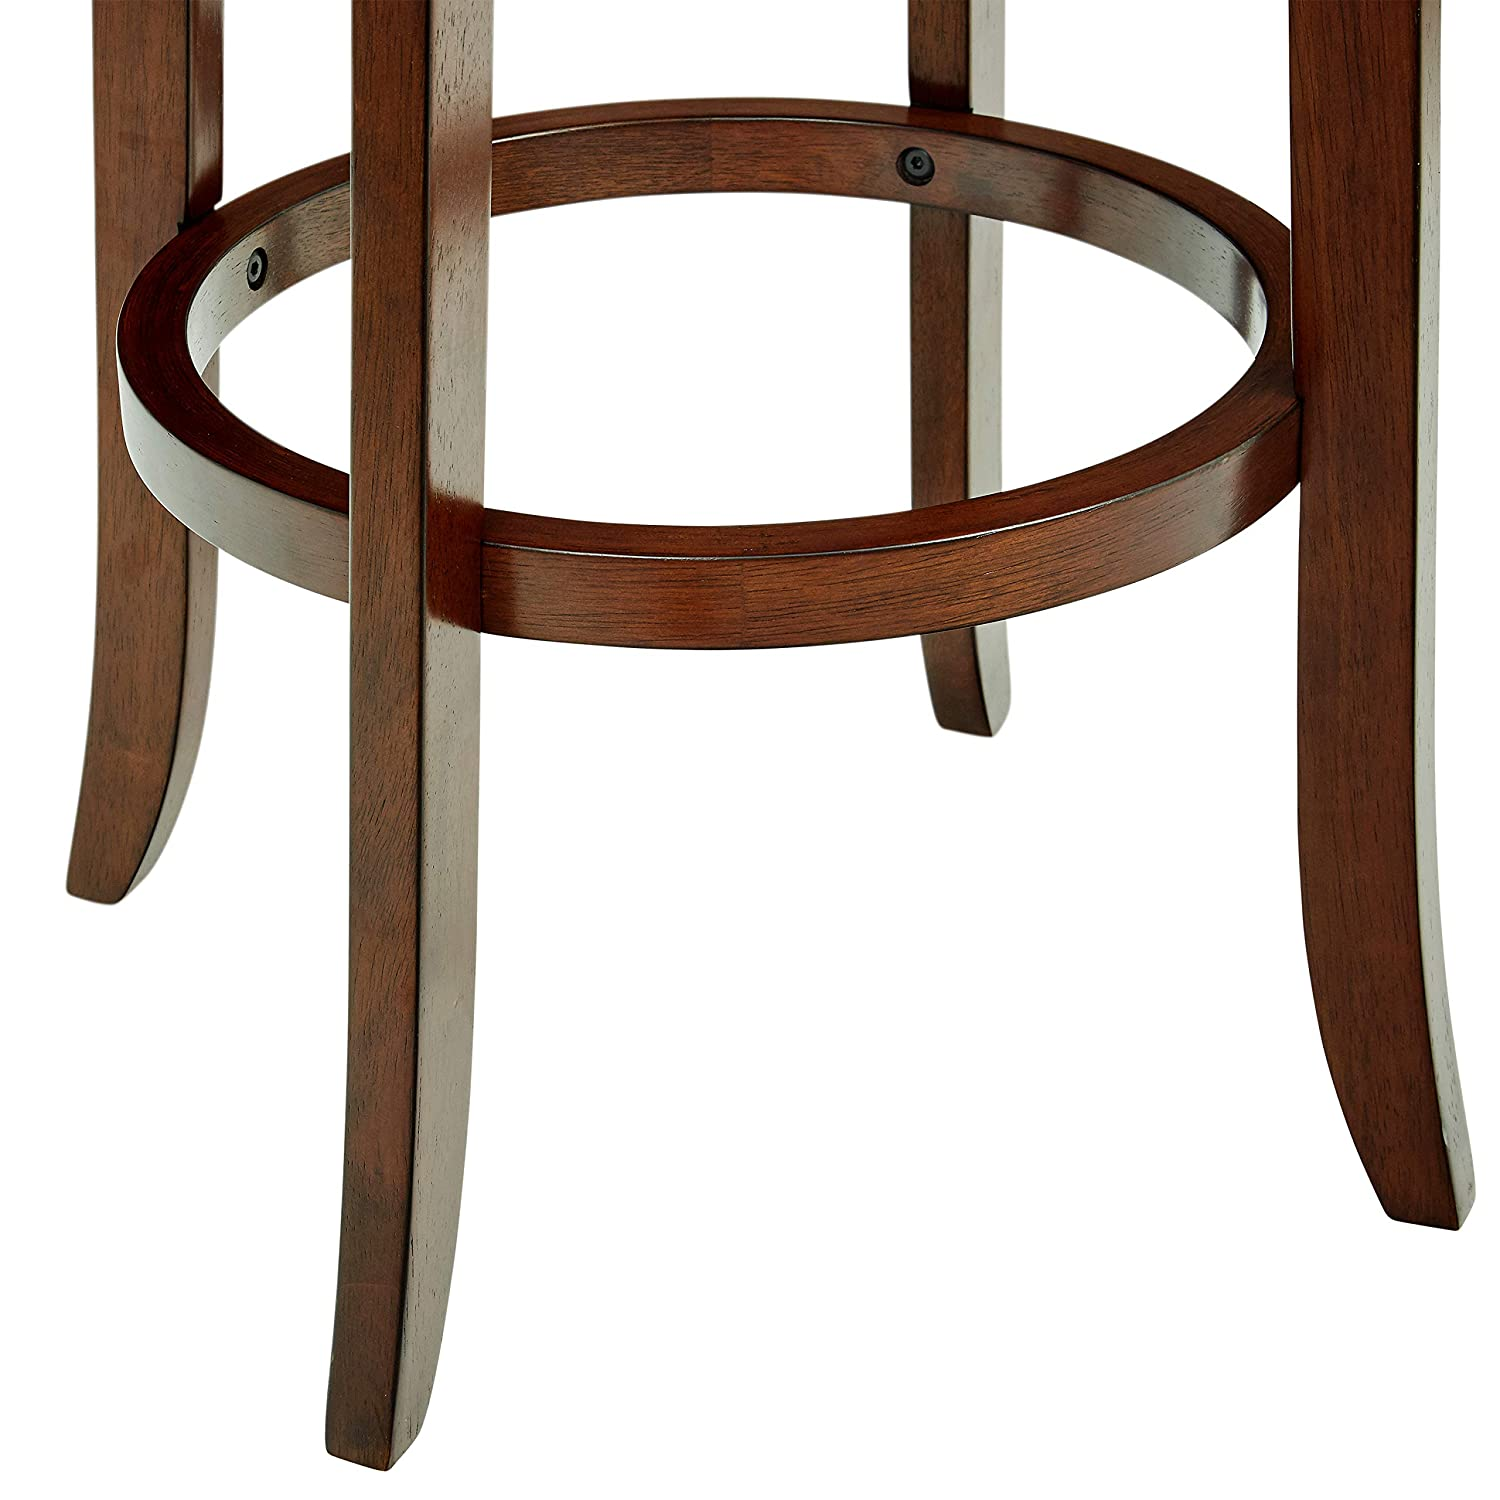 Ravenna Home Rosalind Swivel Ladder Back Bar Stool, 43.6 H, Cherry